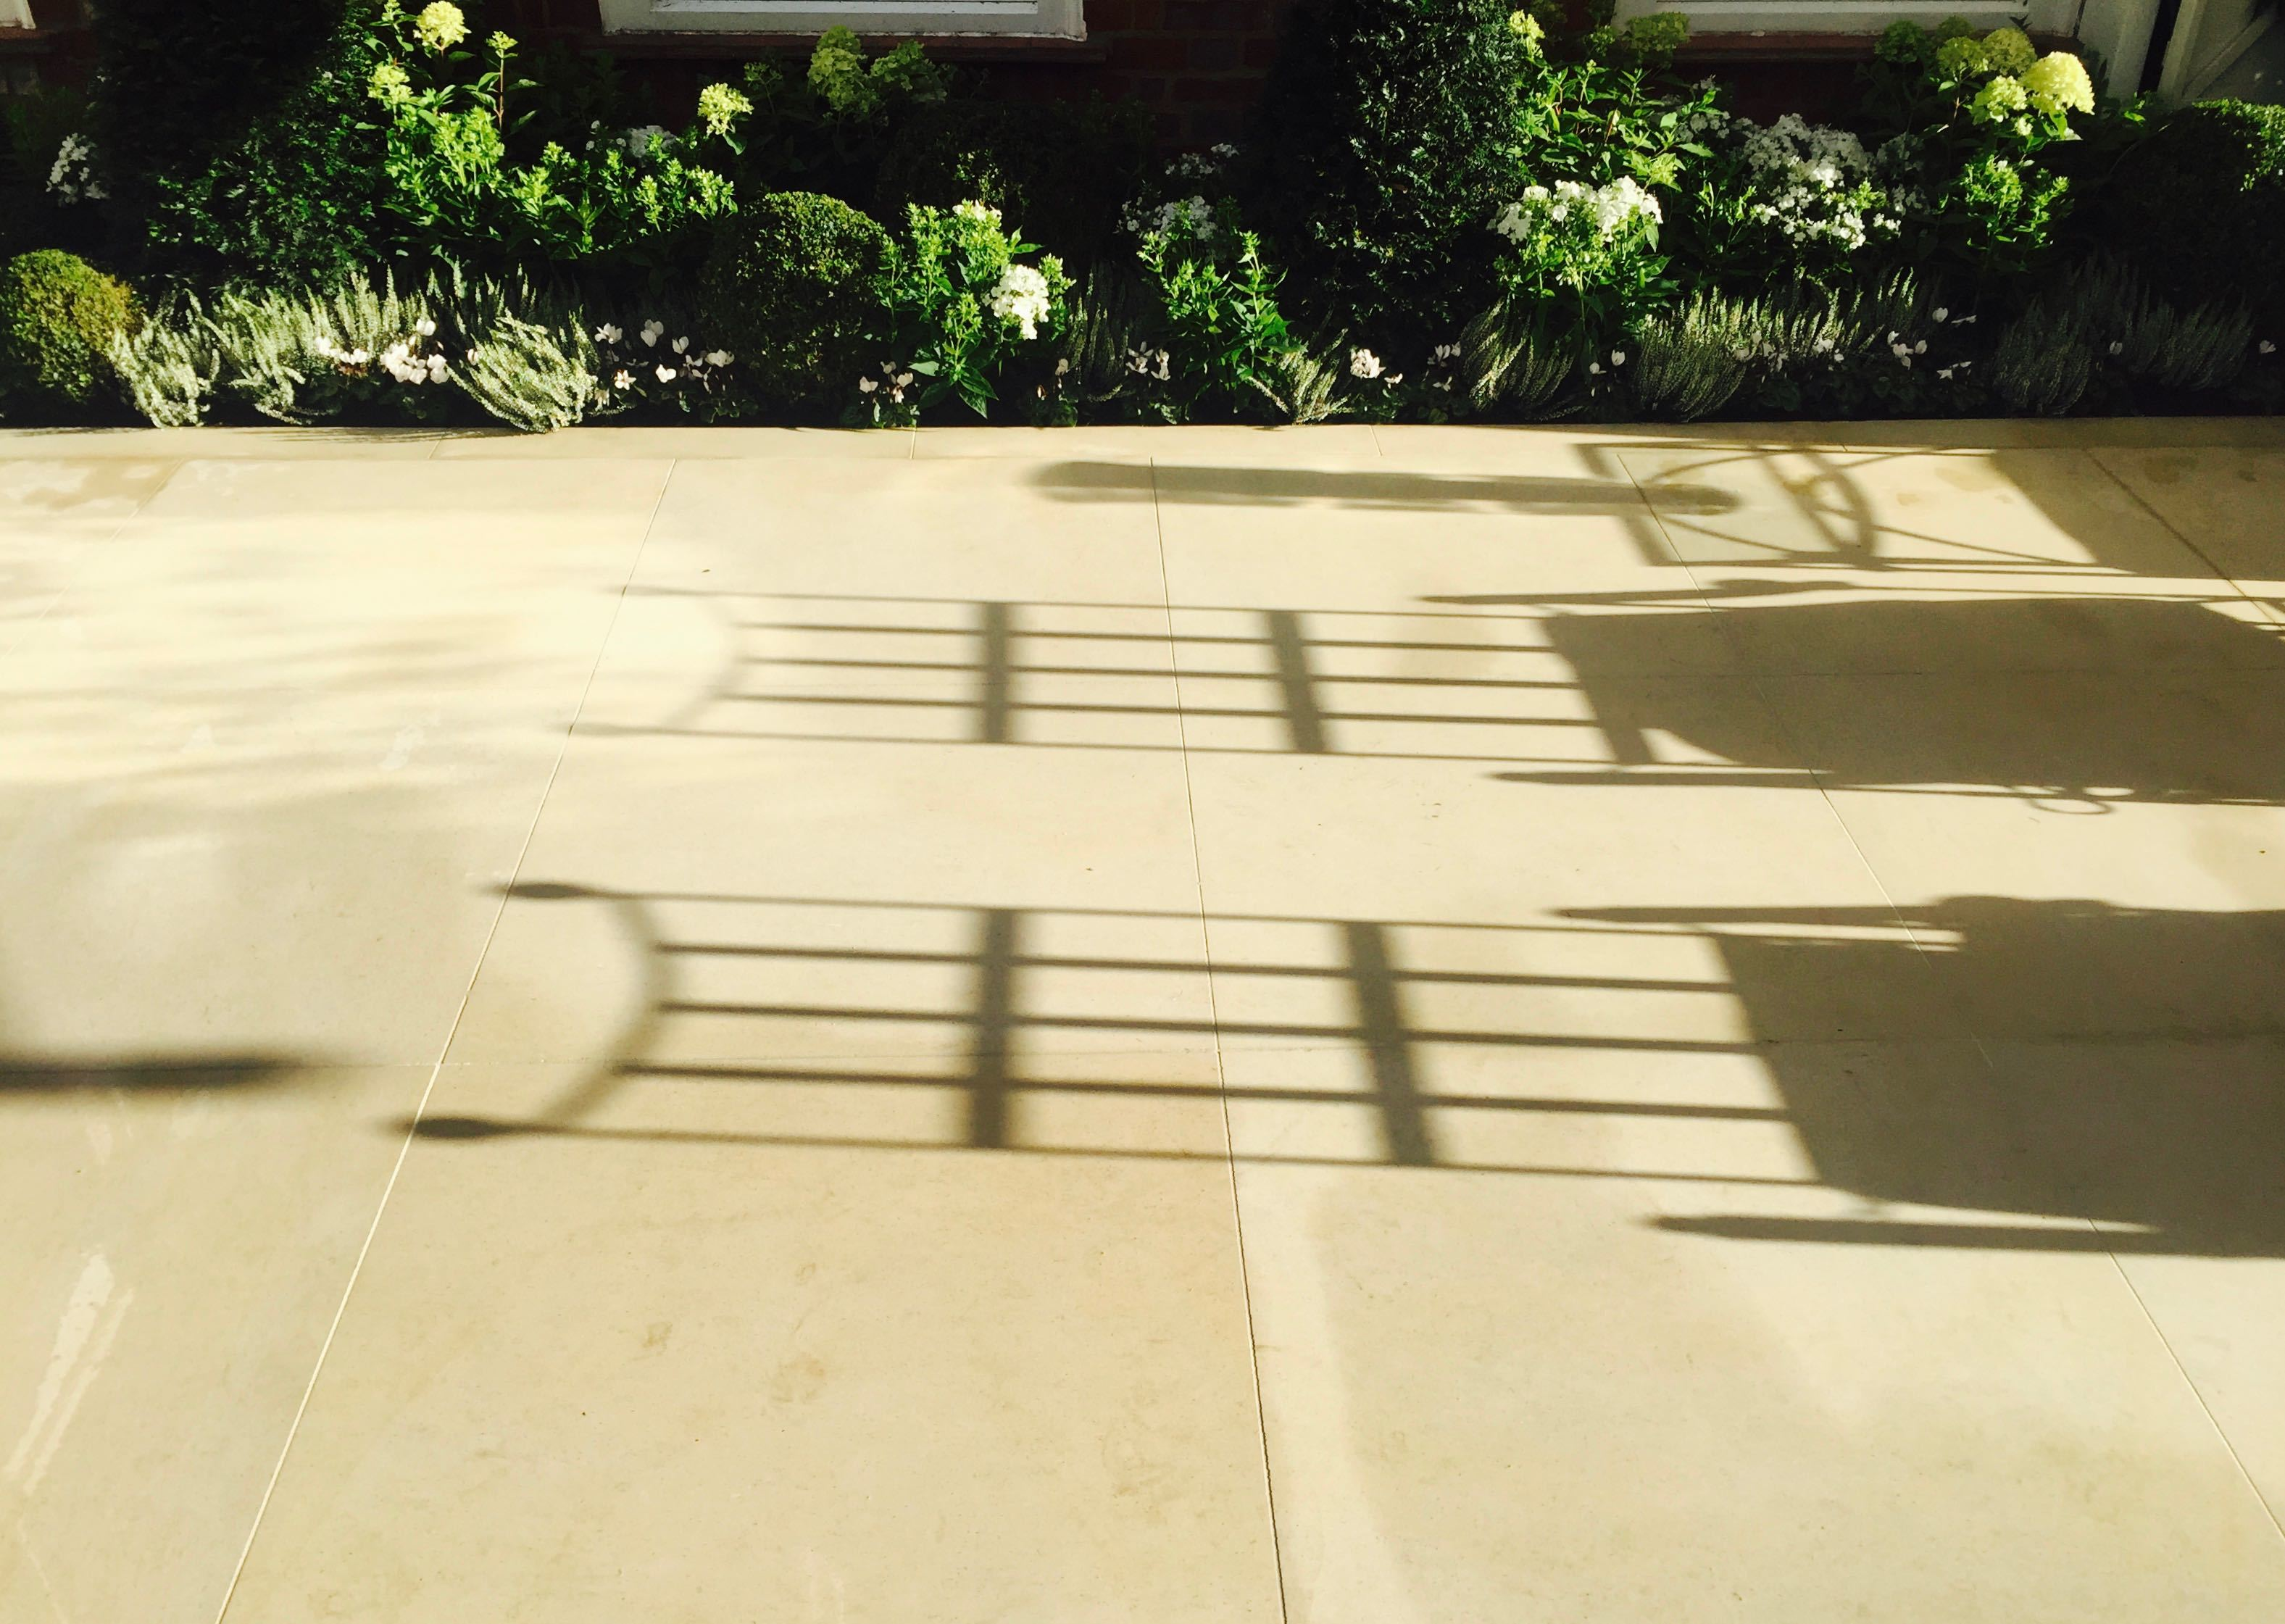 image of Portland Stone paving with shadows